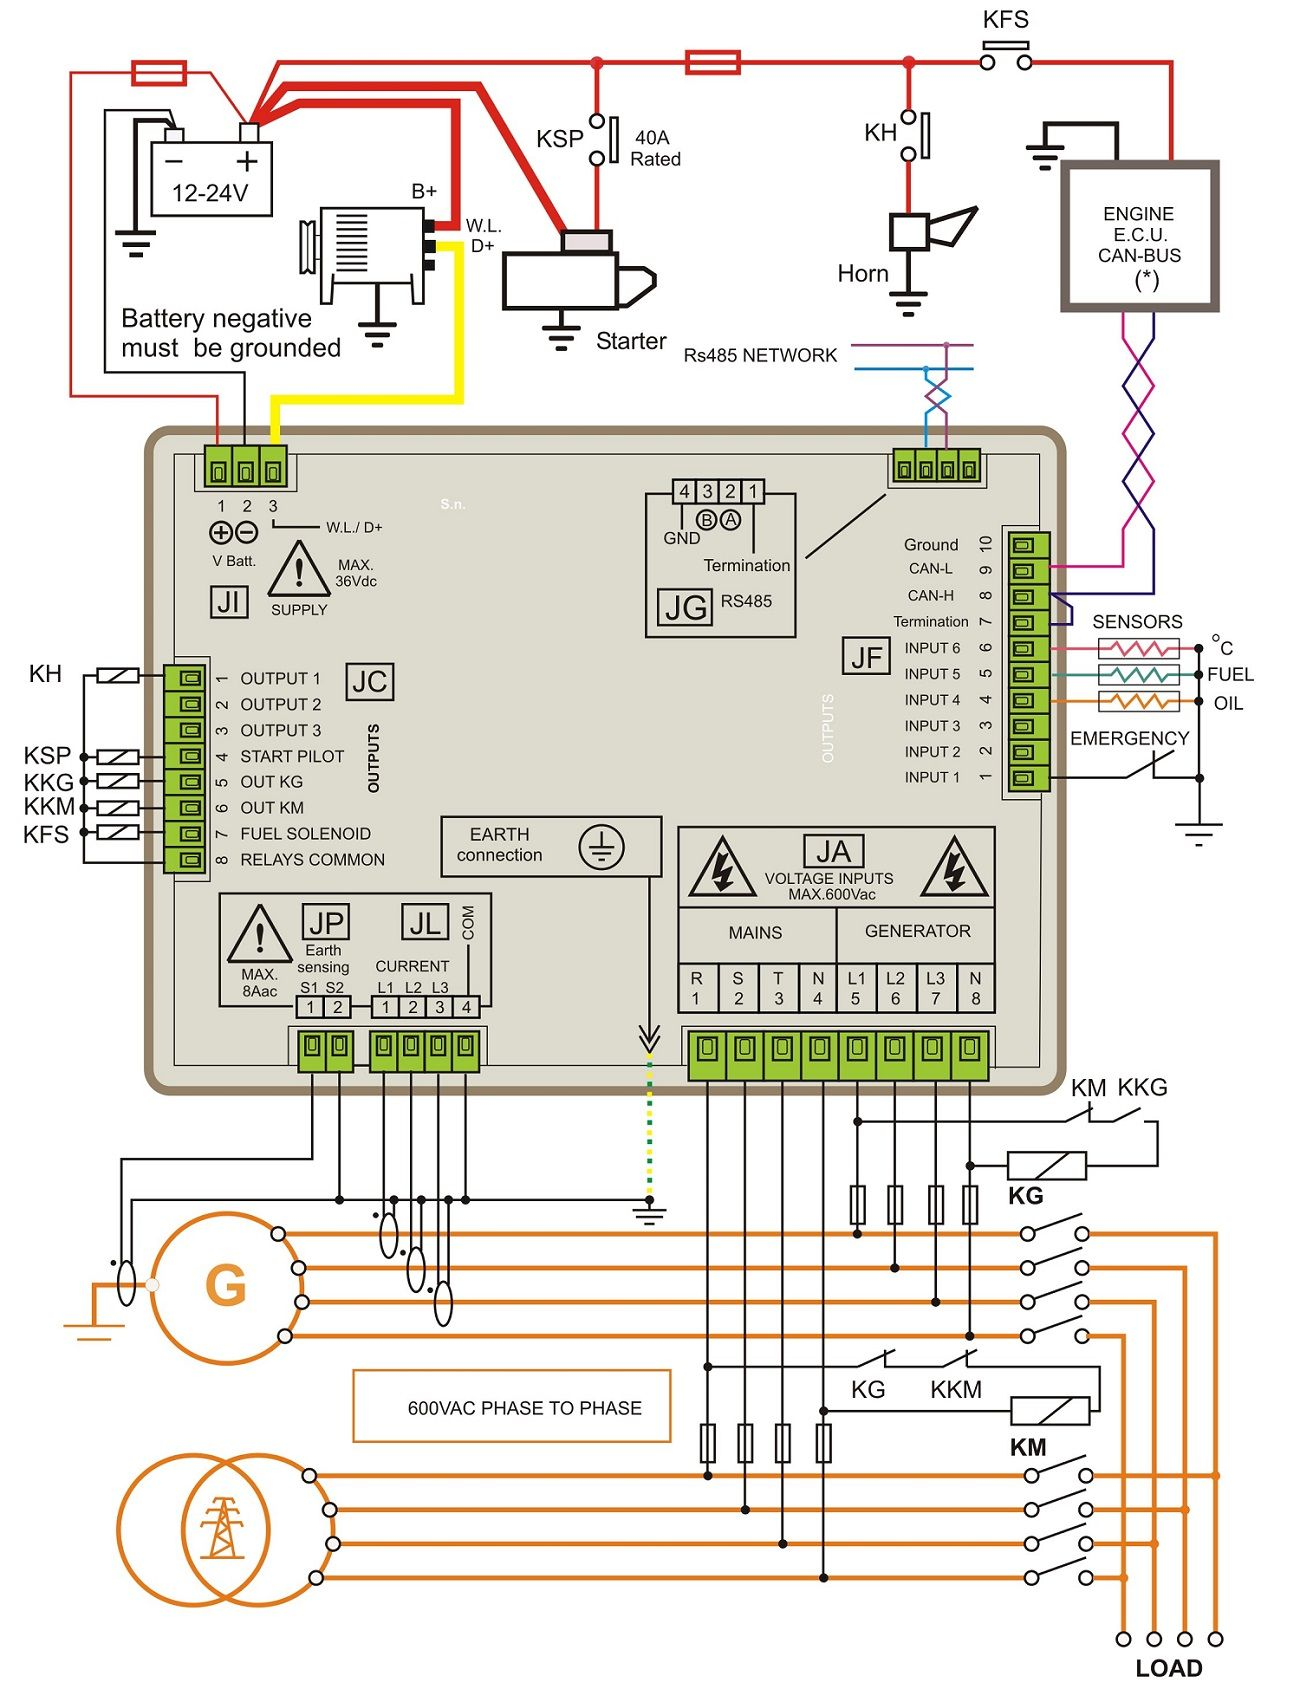 Generator control panel for industrial applications diagramg generator control panel for industrial applications diagramg asfbconference2016